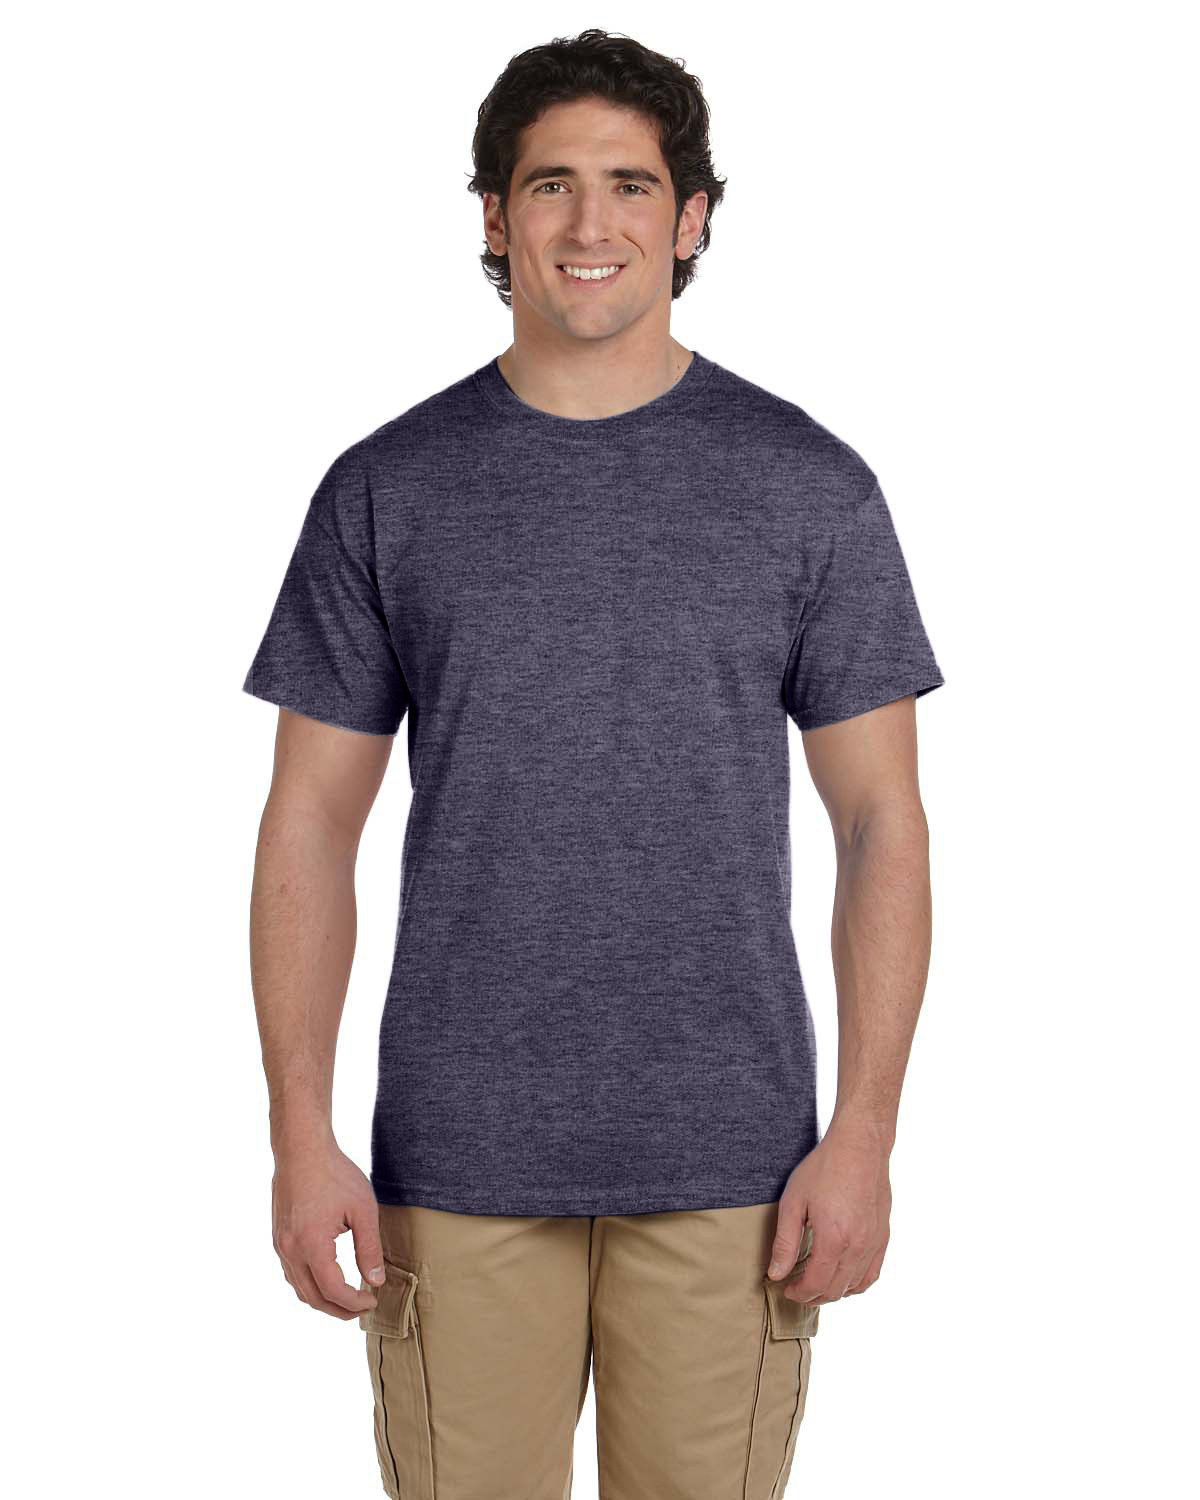 Fruit of the Loom Adult HD Cotton™ T-Shirt VINTAGE HTR NAVY